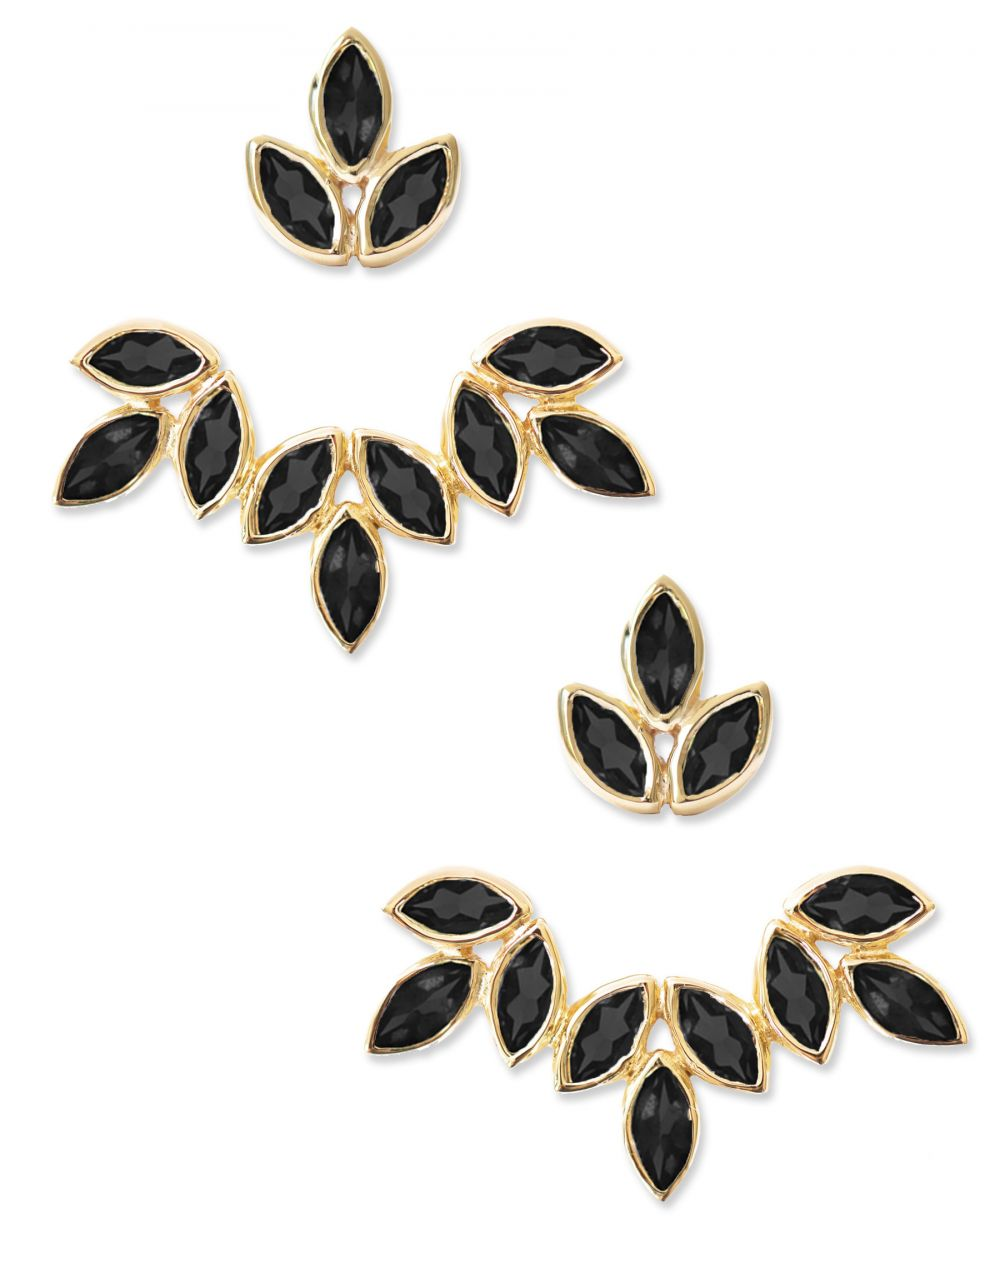 Romy Ear Jackets<br /><i><small>18K Gold Plated with Black Onyx</small></i><br />